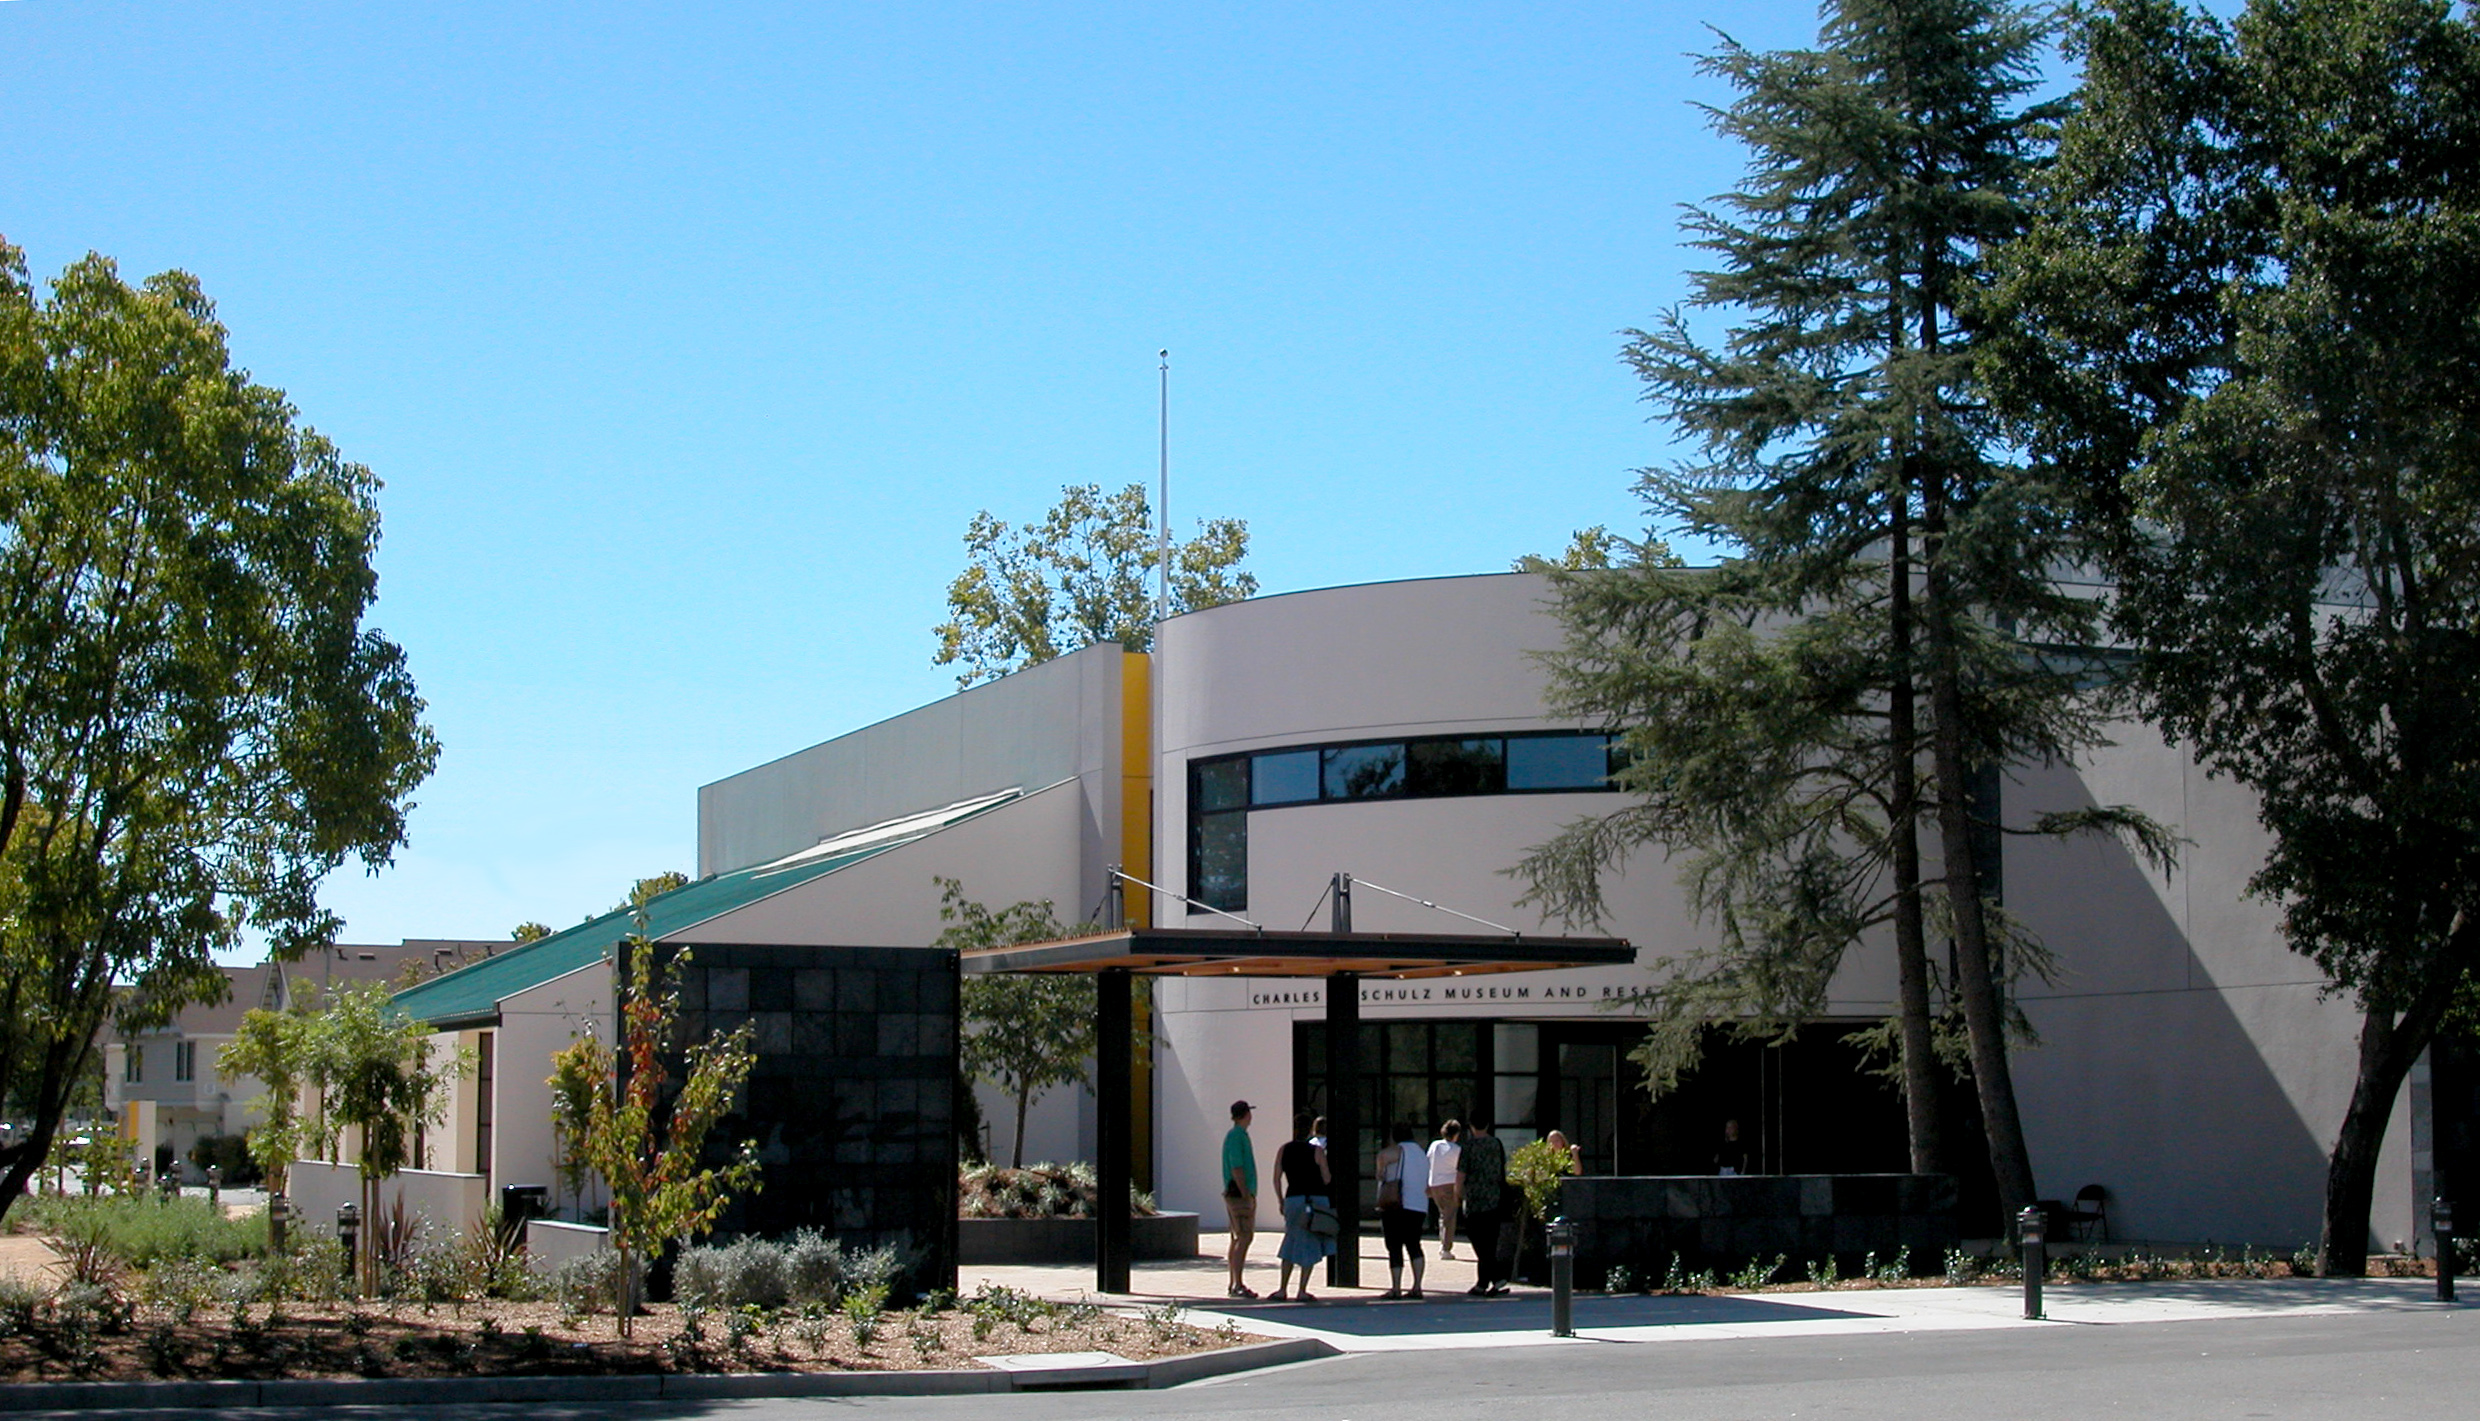 Photo by Rick Samuels, Courtesy of the Charles M. Schulz Museum and Research Center. The front of the Building